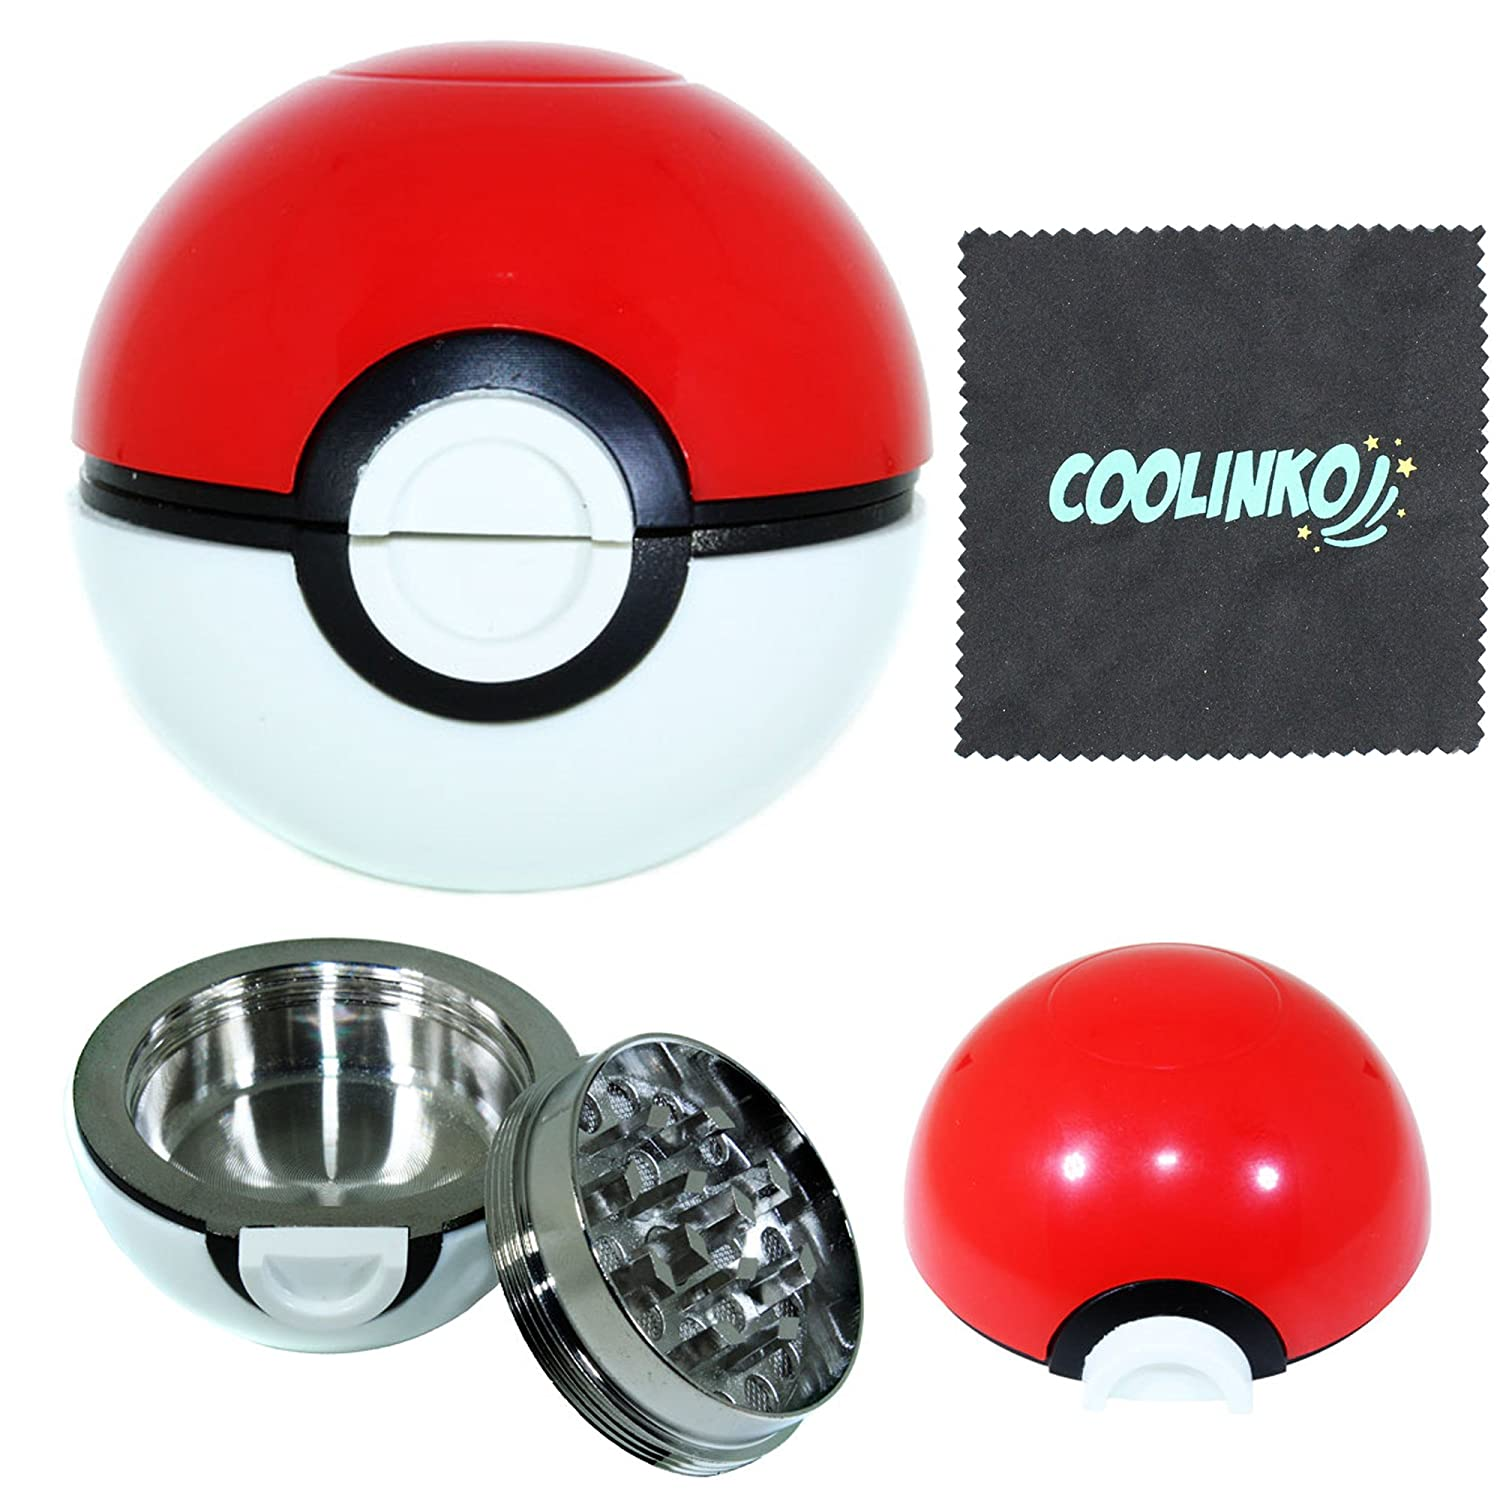 Premium 3 Piece Pokemon Ball Grinder - Ideal for Weed, Tobacco, and Spices - Sharp Blades for A Smooth Grind - Awesome Present for Pokemon Fans - Kief Catcher, Cleaning Cloth and Box Included Assortmart